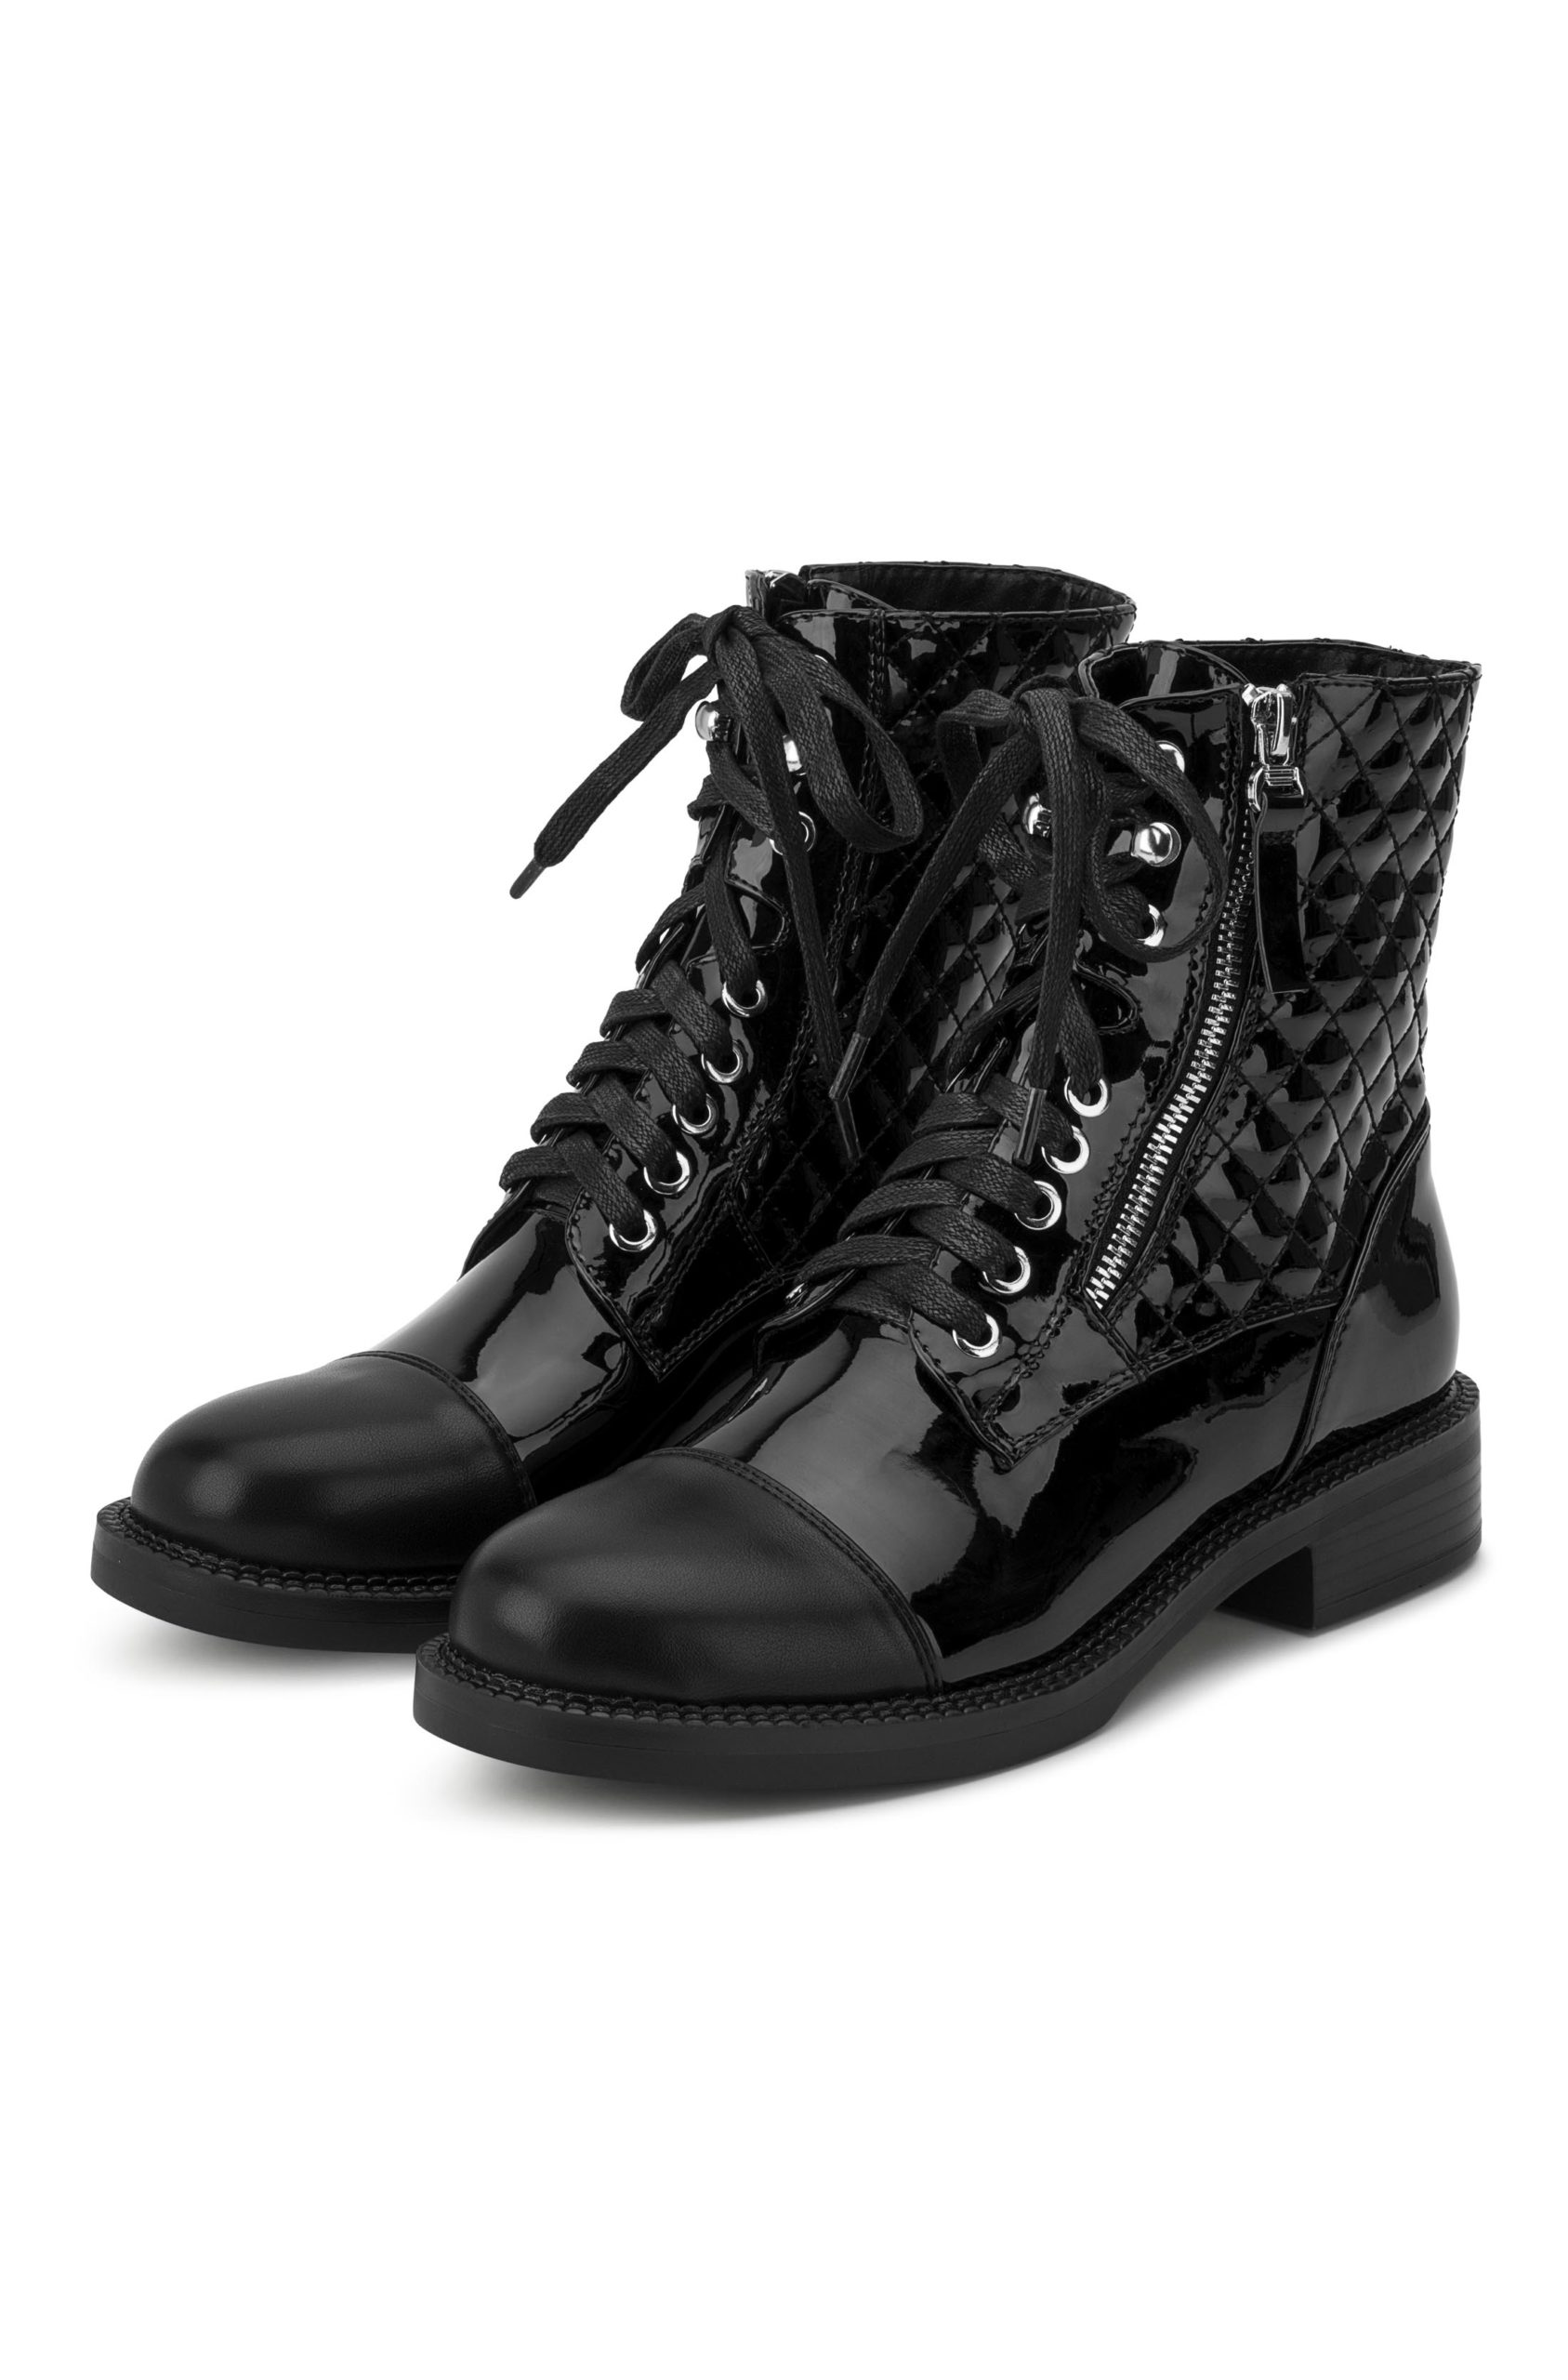 Ankleboots with silver details